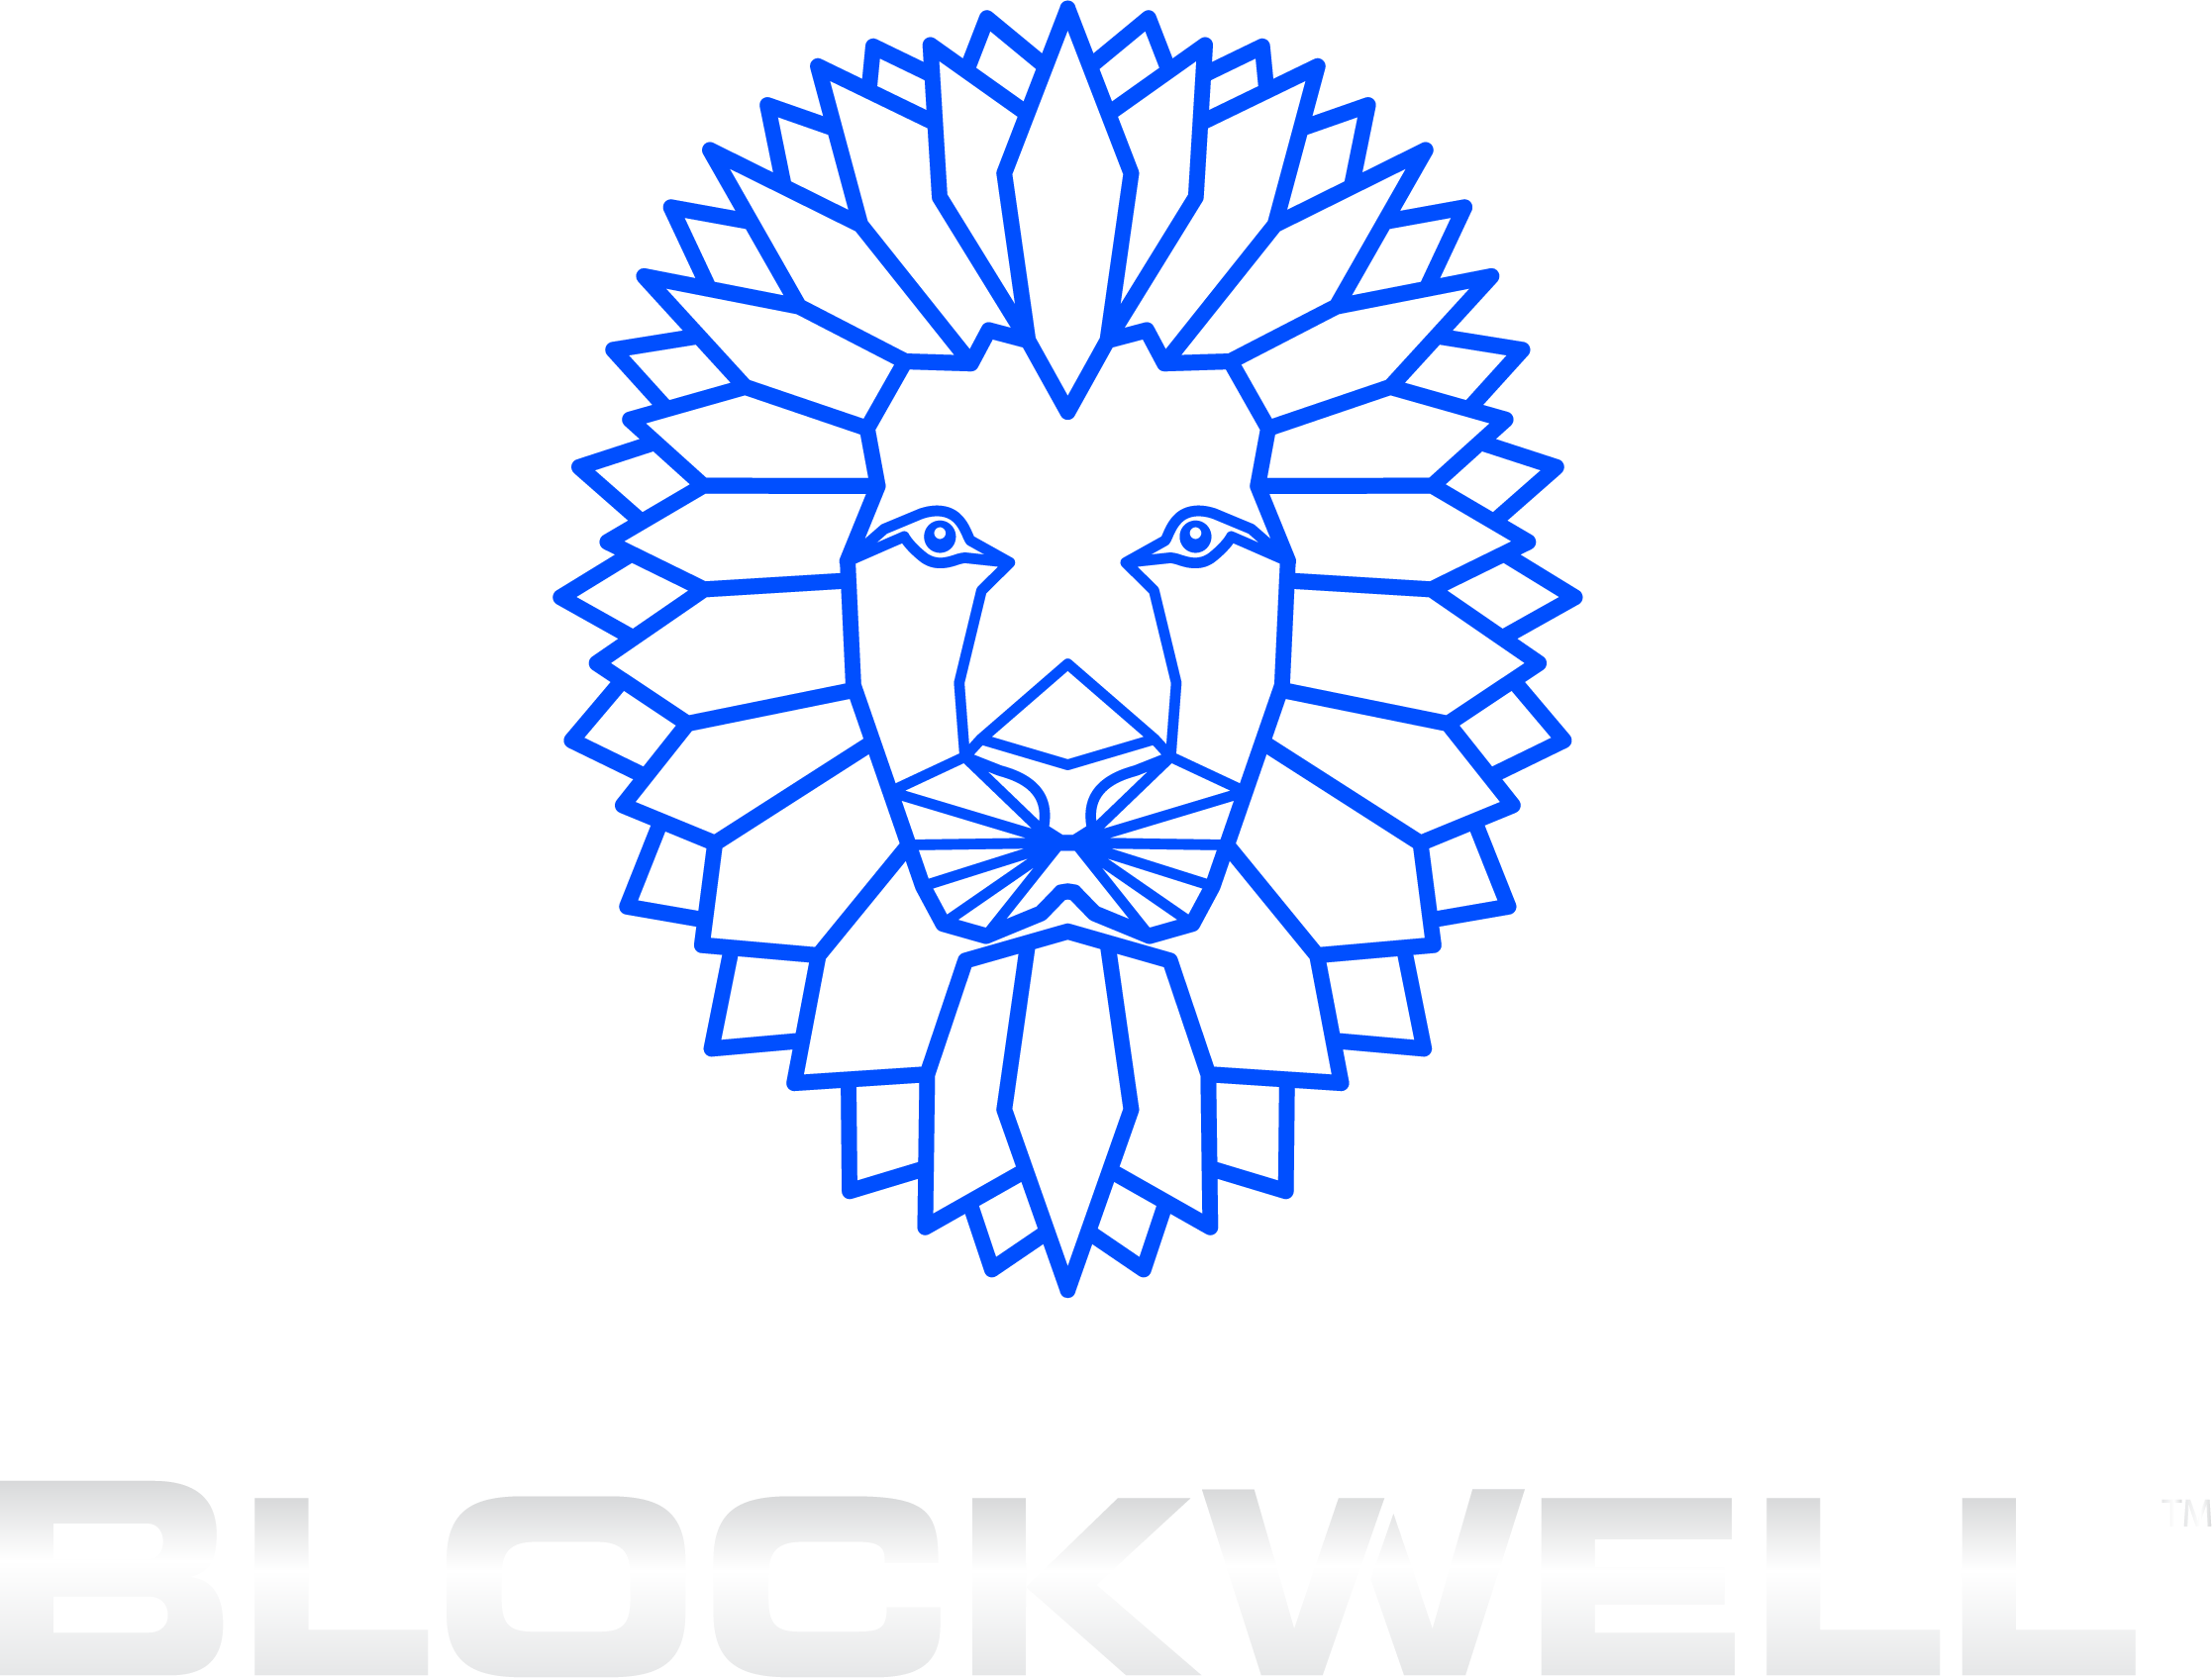 Blockwell_logo_stack.png